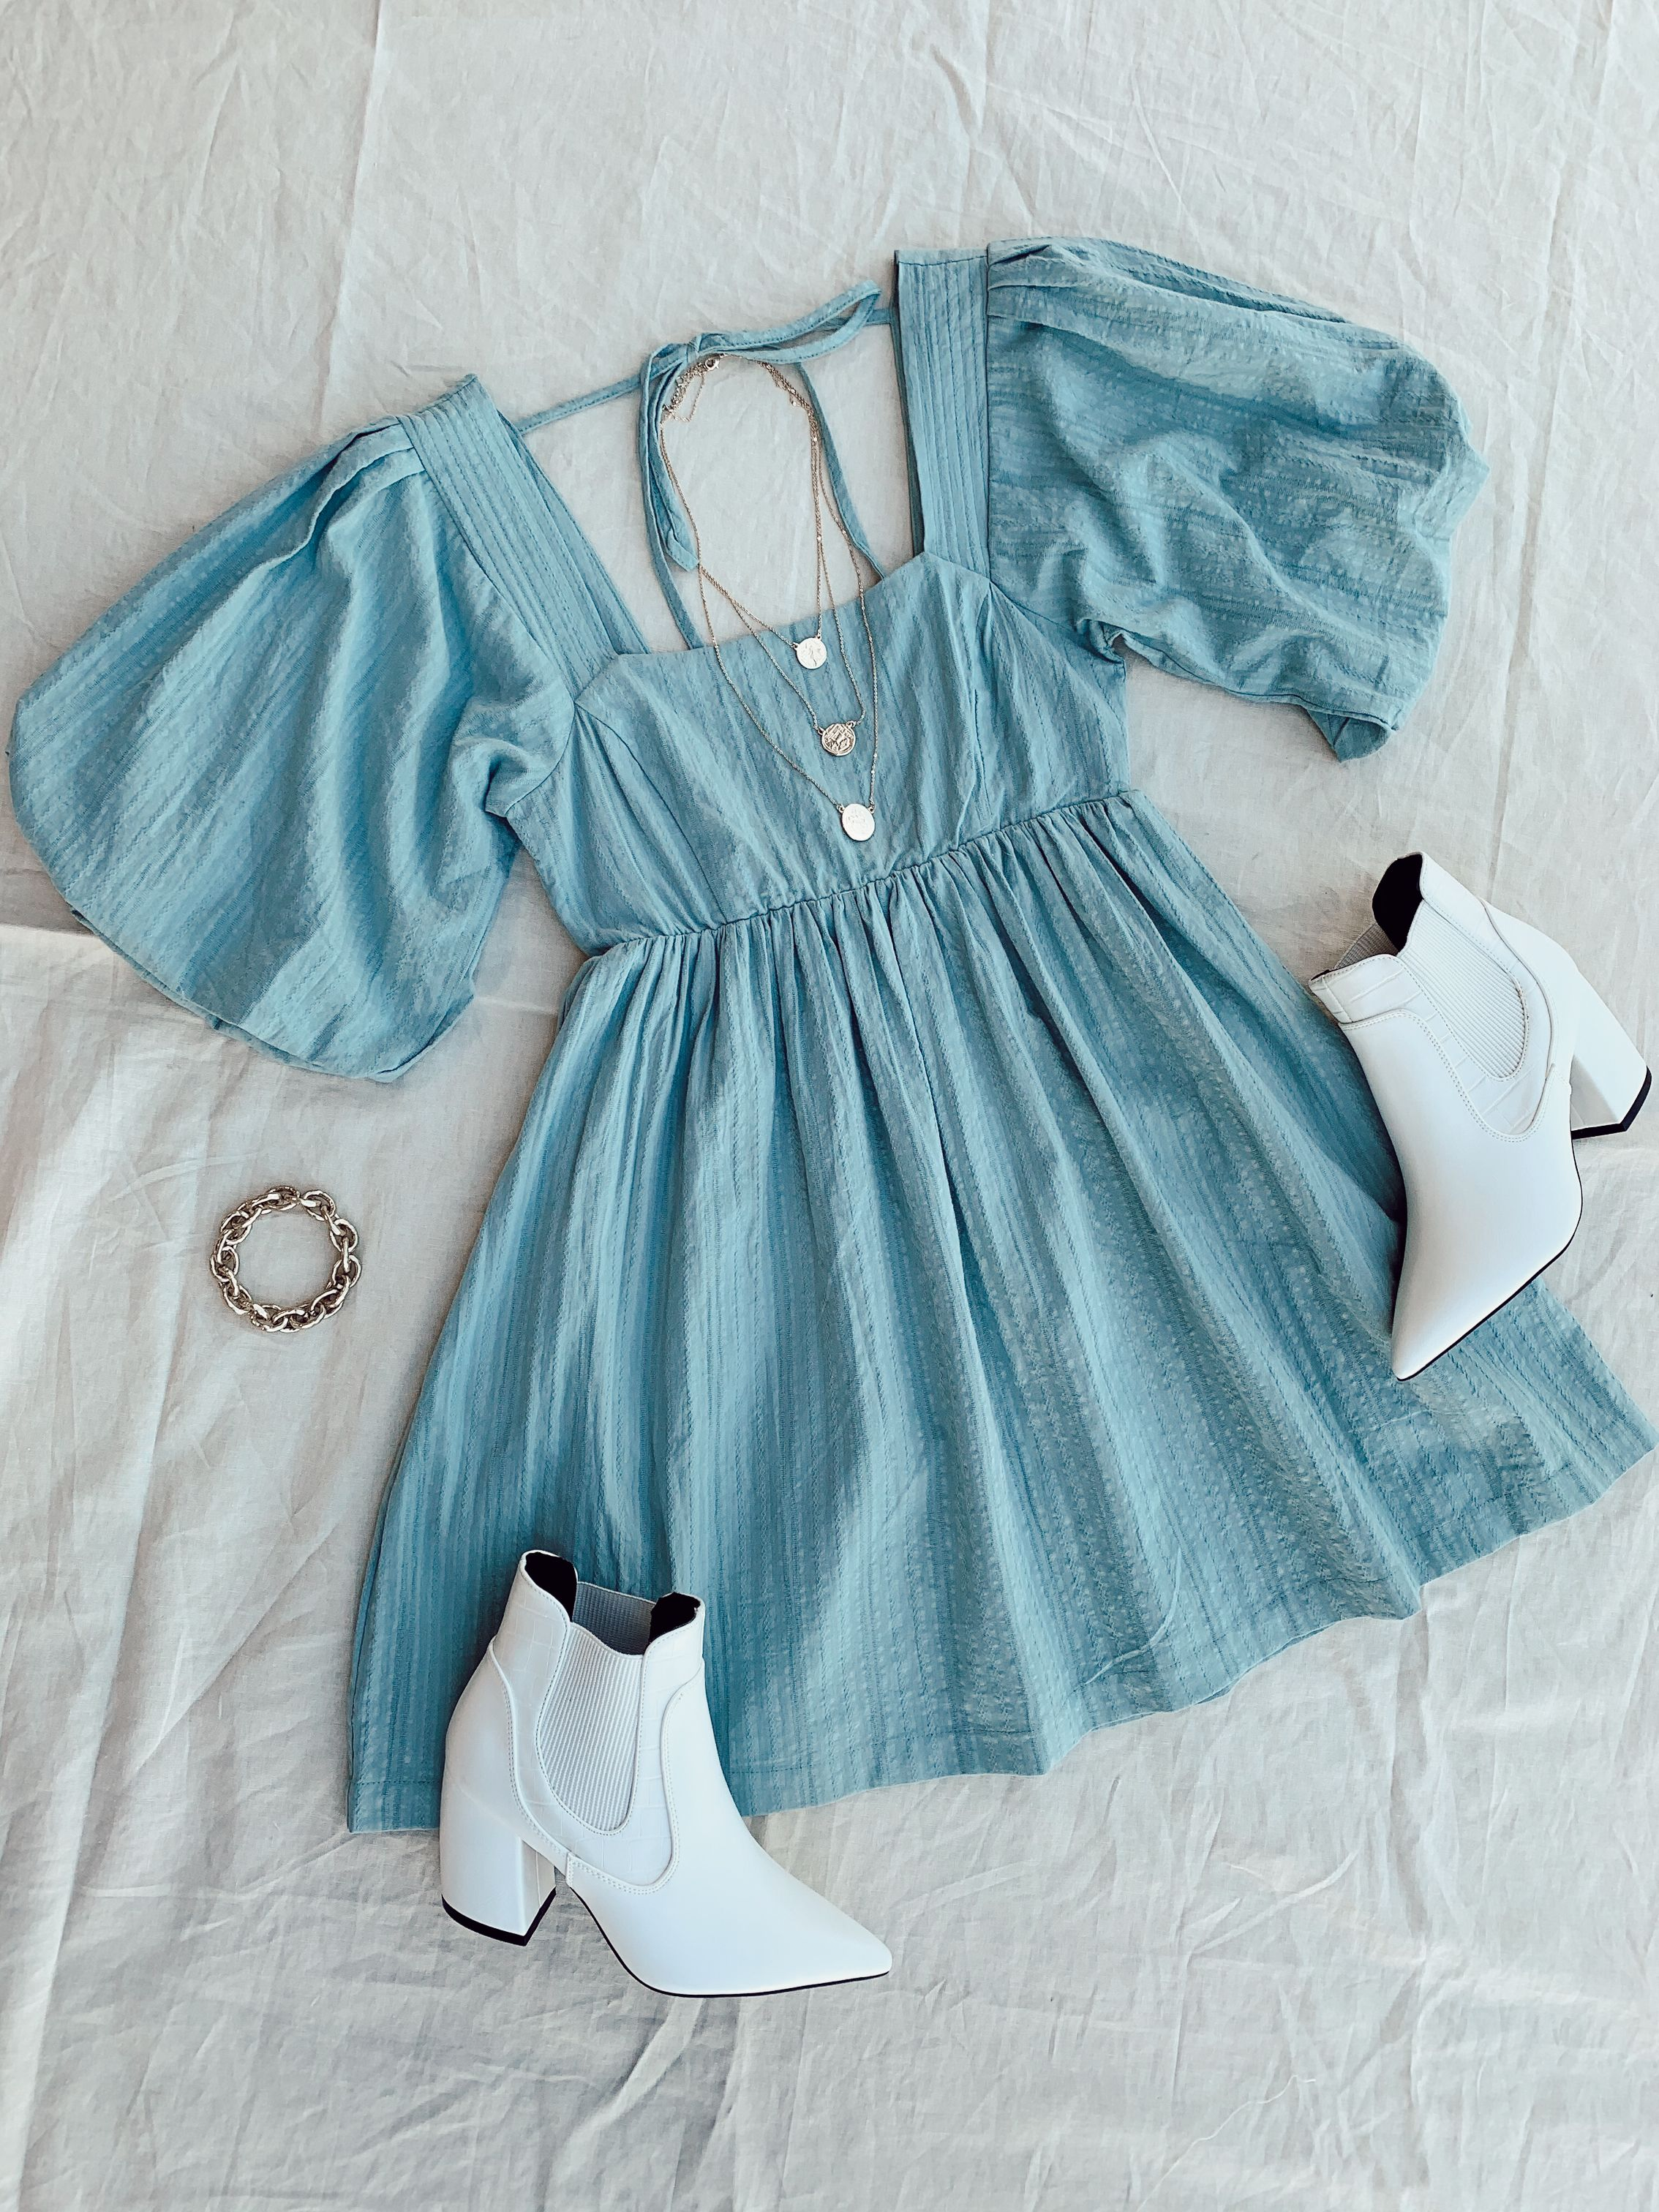 Blue Puff Sleeve Baby Doll Dress With Back Detail Casual Style Outfits Girly Outfits Fashion Tops Blouse [ 3024 x 2268 Pixel ]